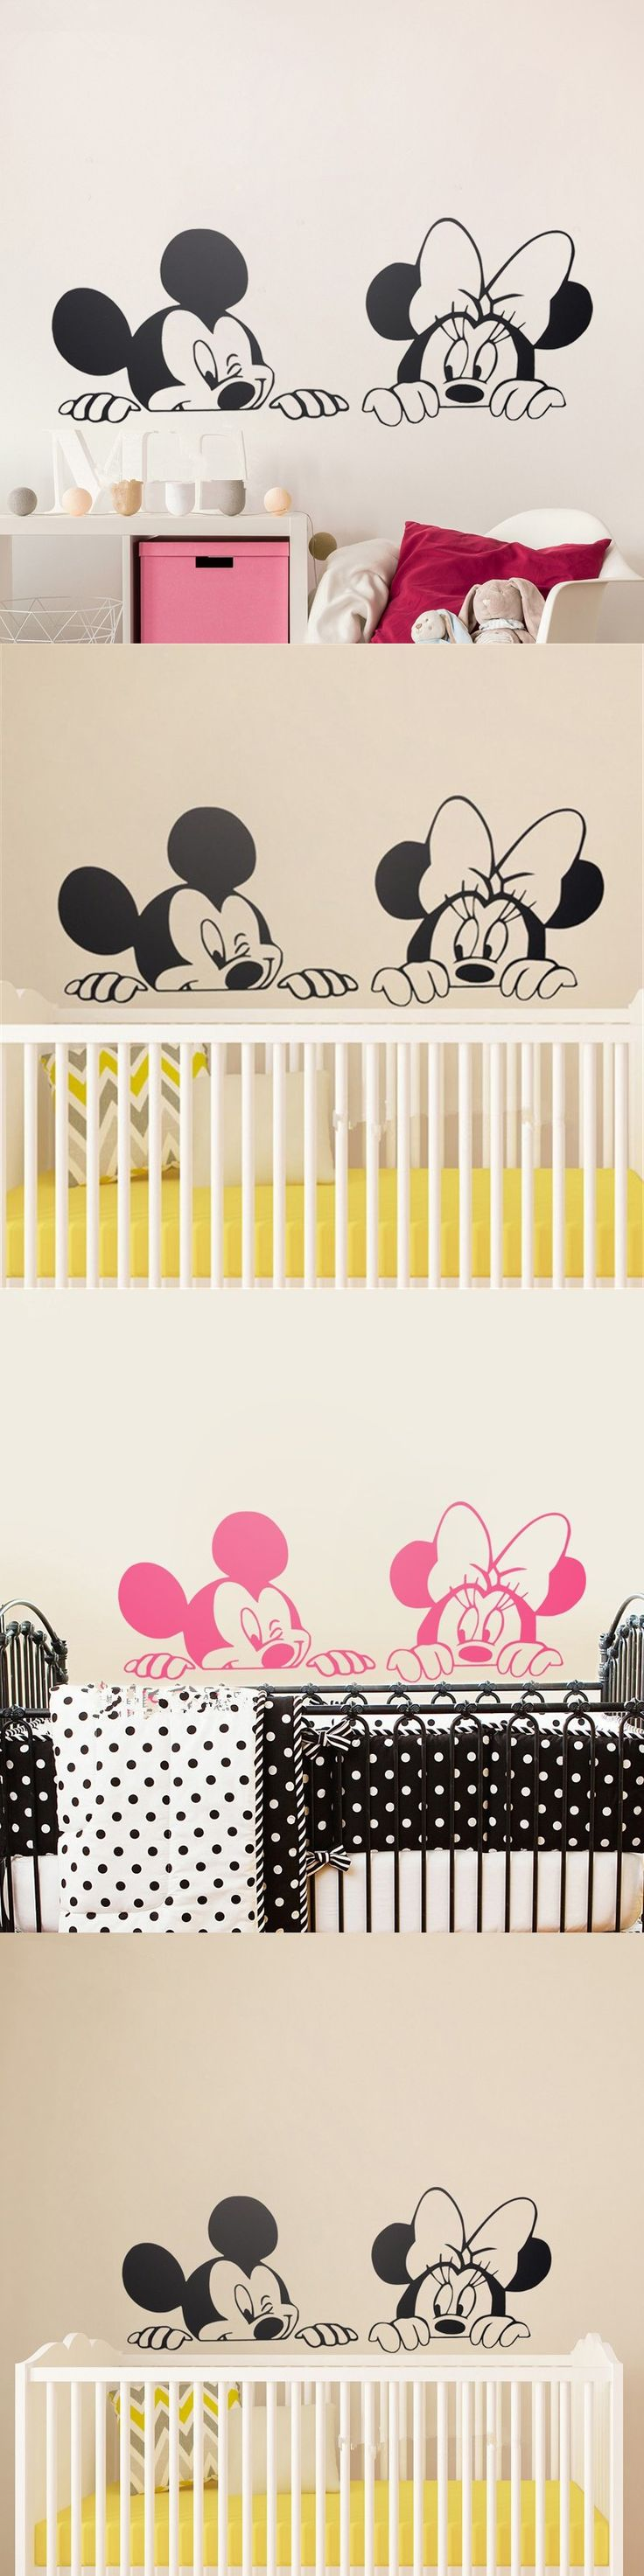 best 25 nursery wall stickers ideas on pinterest nursery cartoon mickey minnie mouse cute animal vinyl wall stickers mural wallpaper baby room decor nursery wall decal home decor